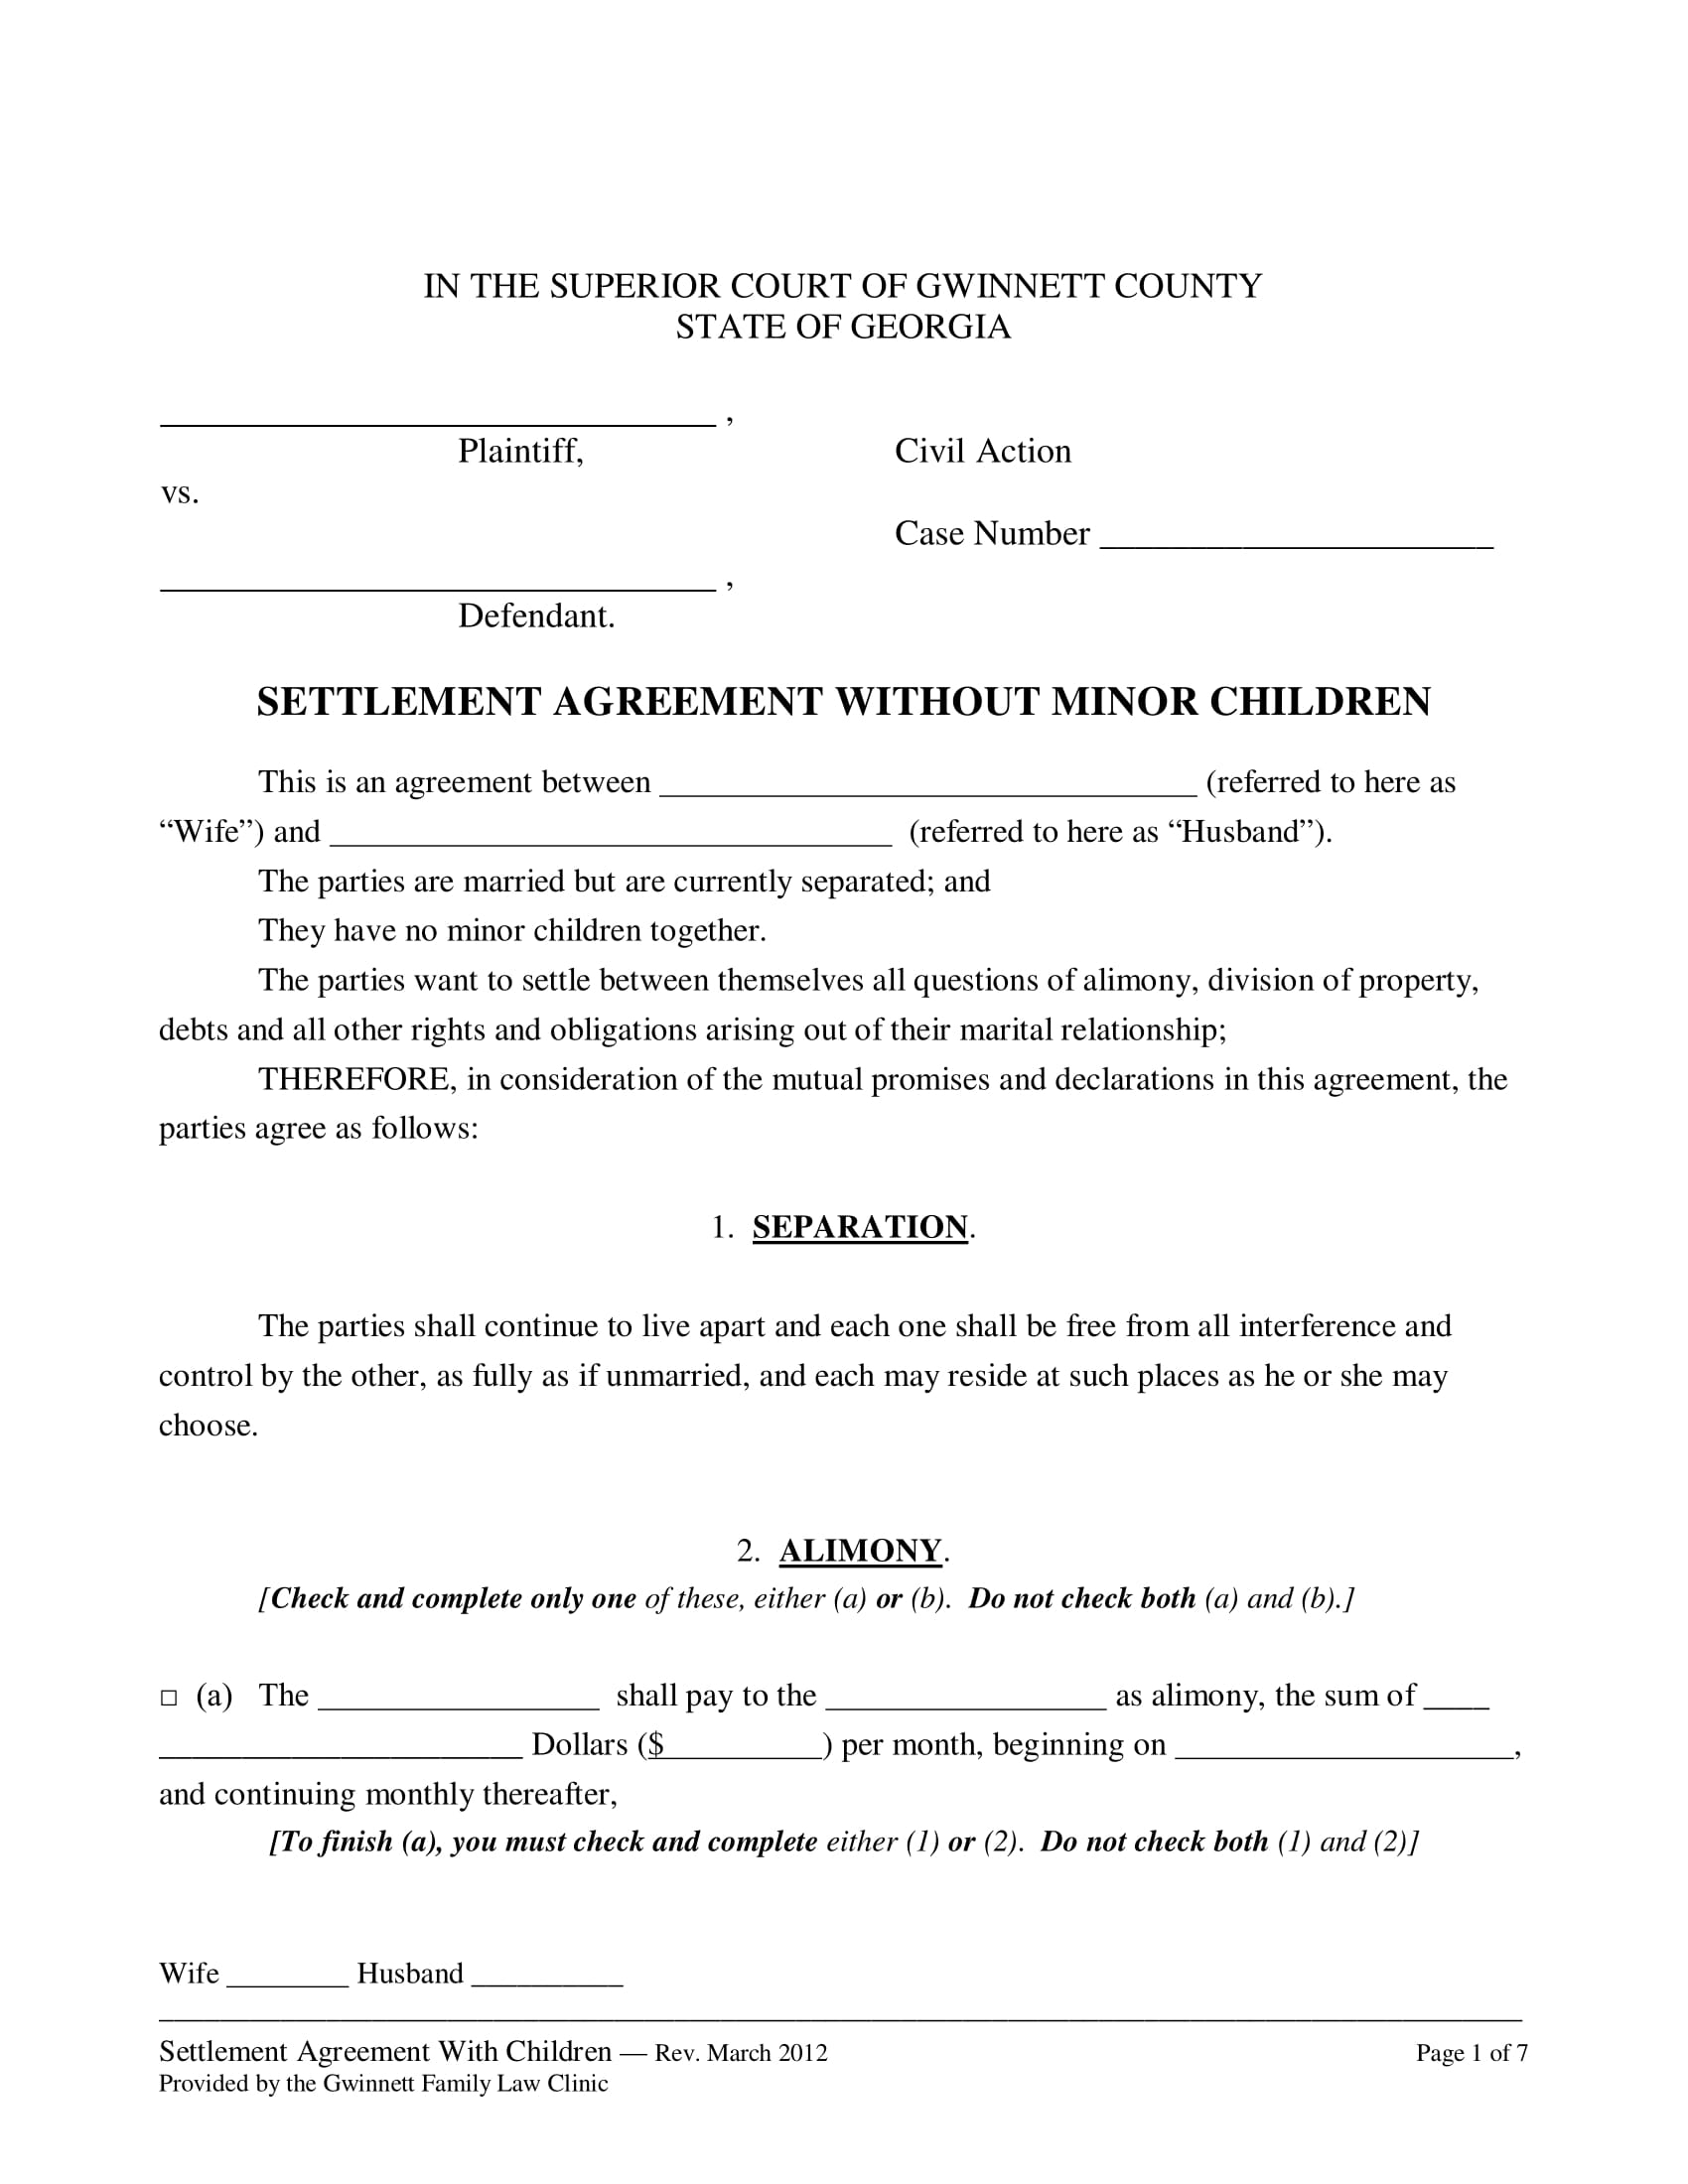 domestic settlement agreement without minor form 1